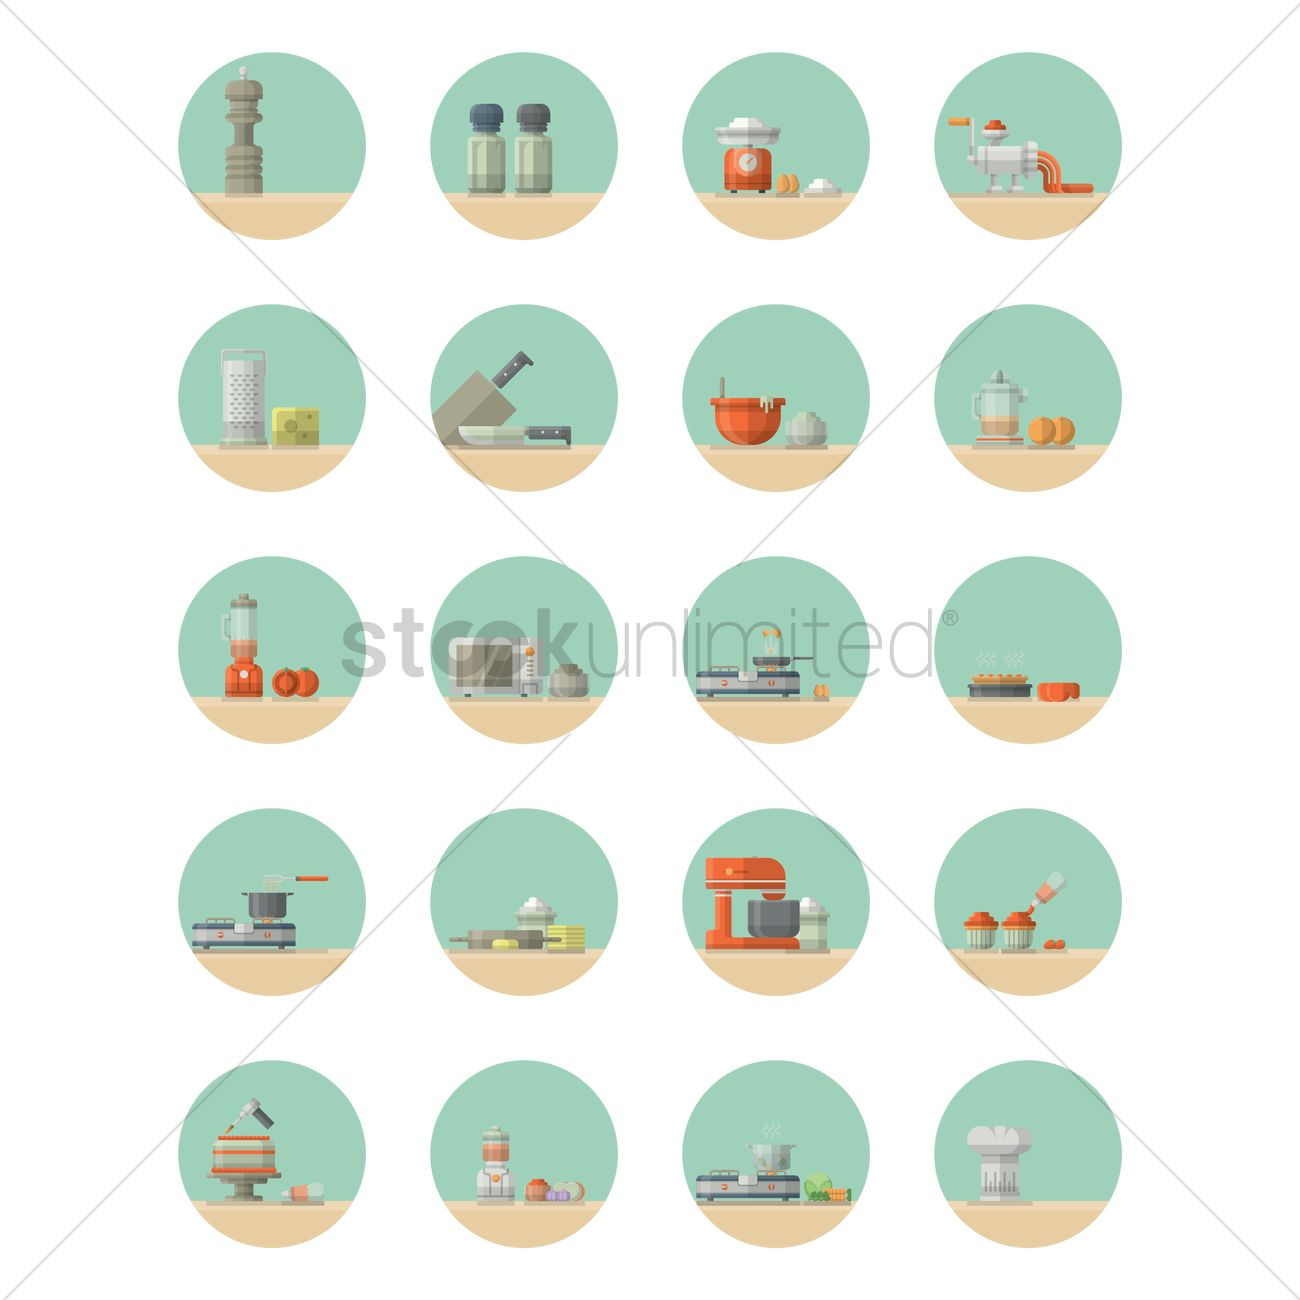 Kitchen utensils and appliances Vector Image - 1351892 | StockUnlimited